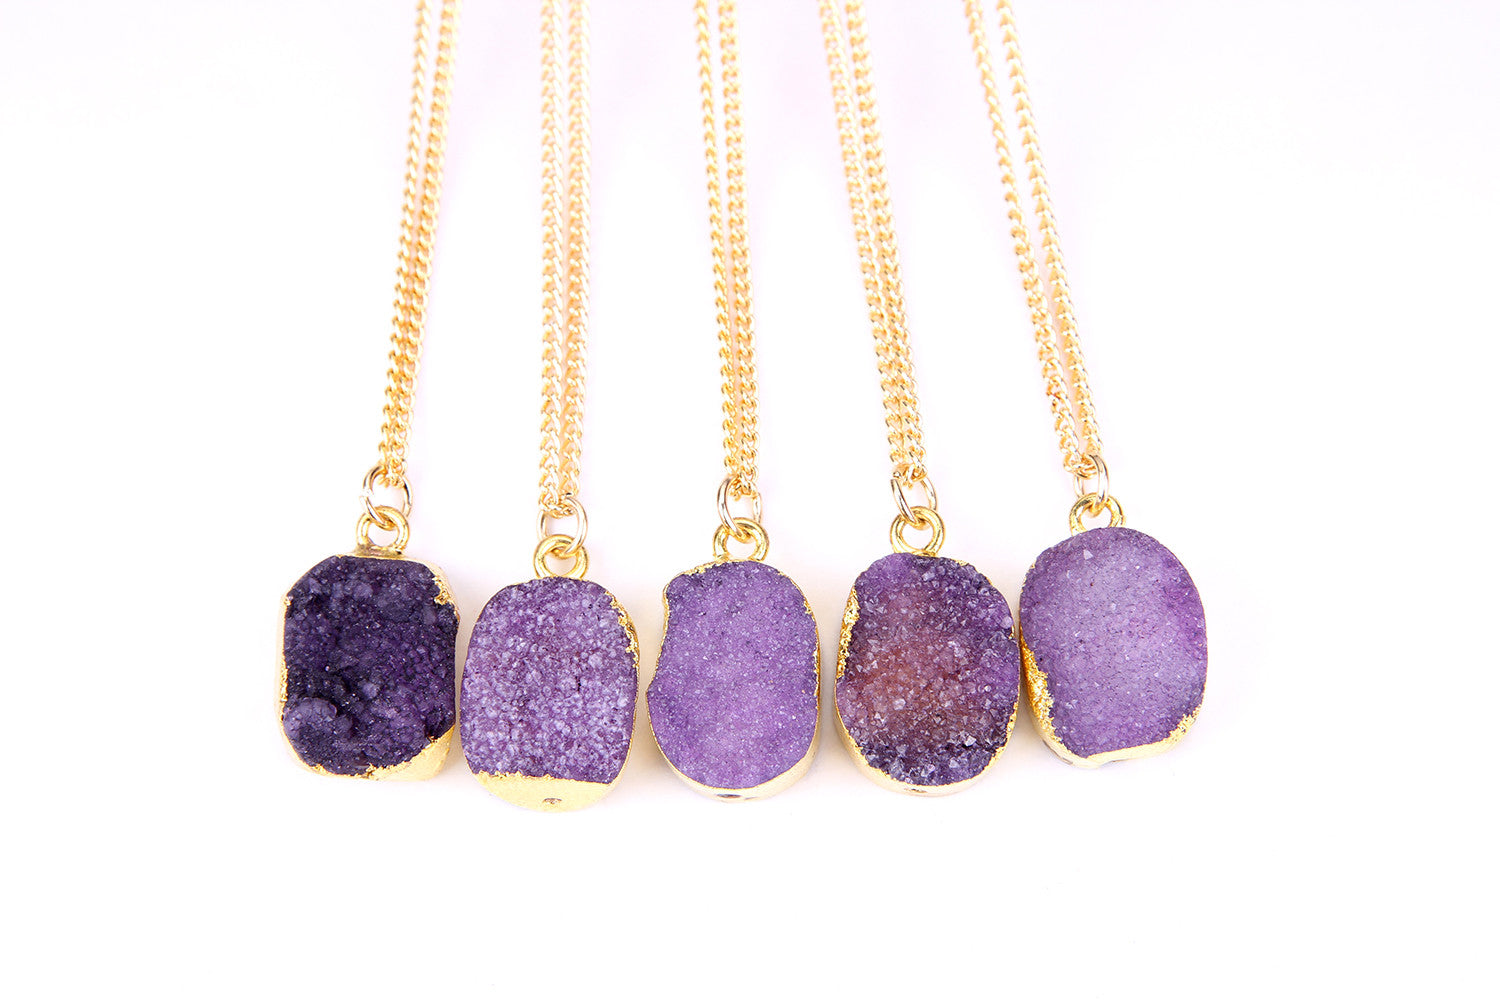 stone clip on purple necklace rounding pin earring set gold round